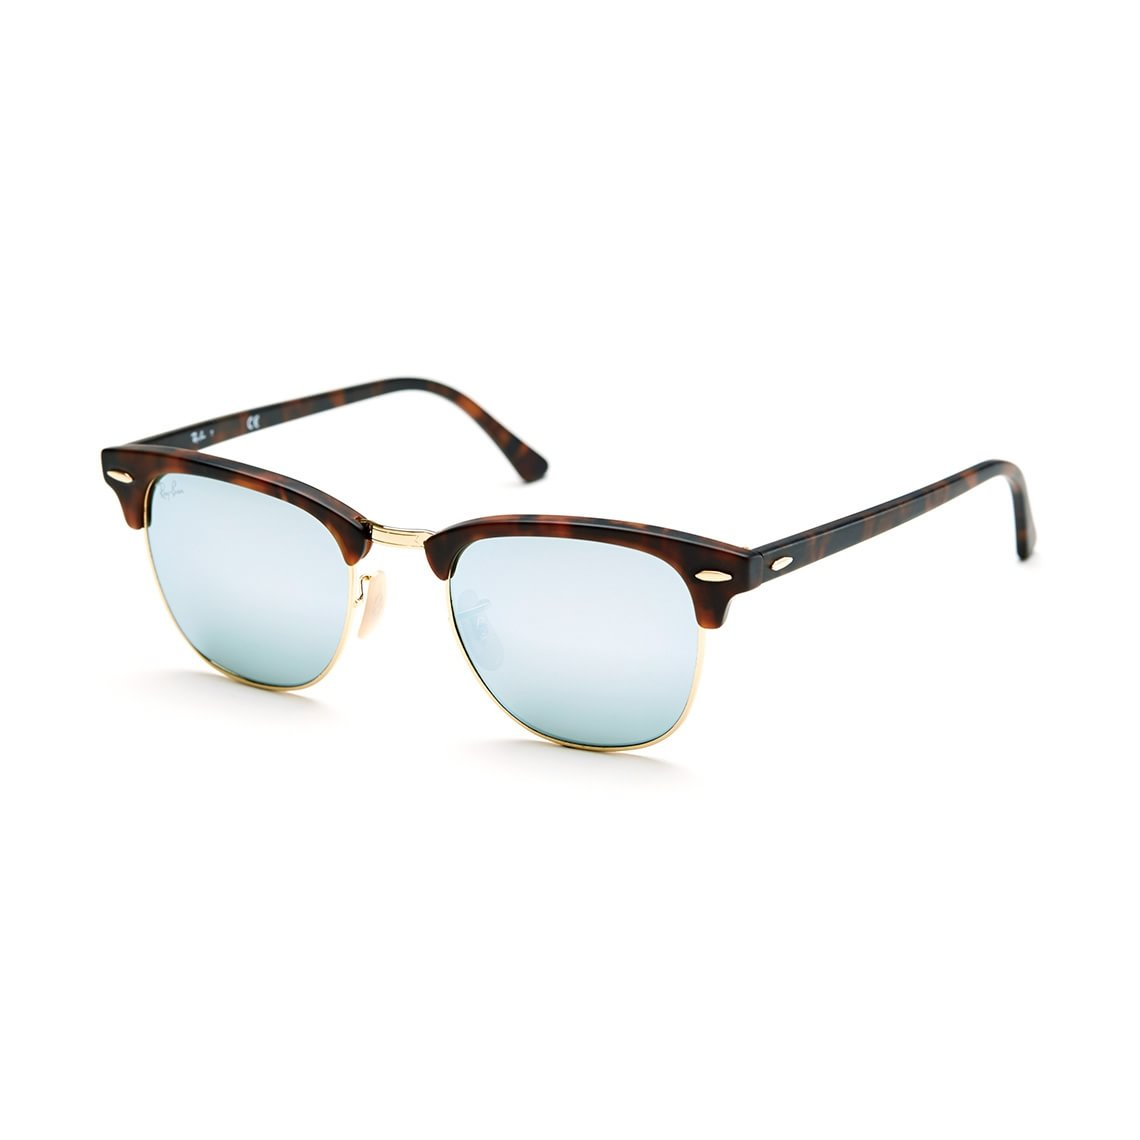 Ray-Ban Clubmaster RB3016 114530 51